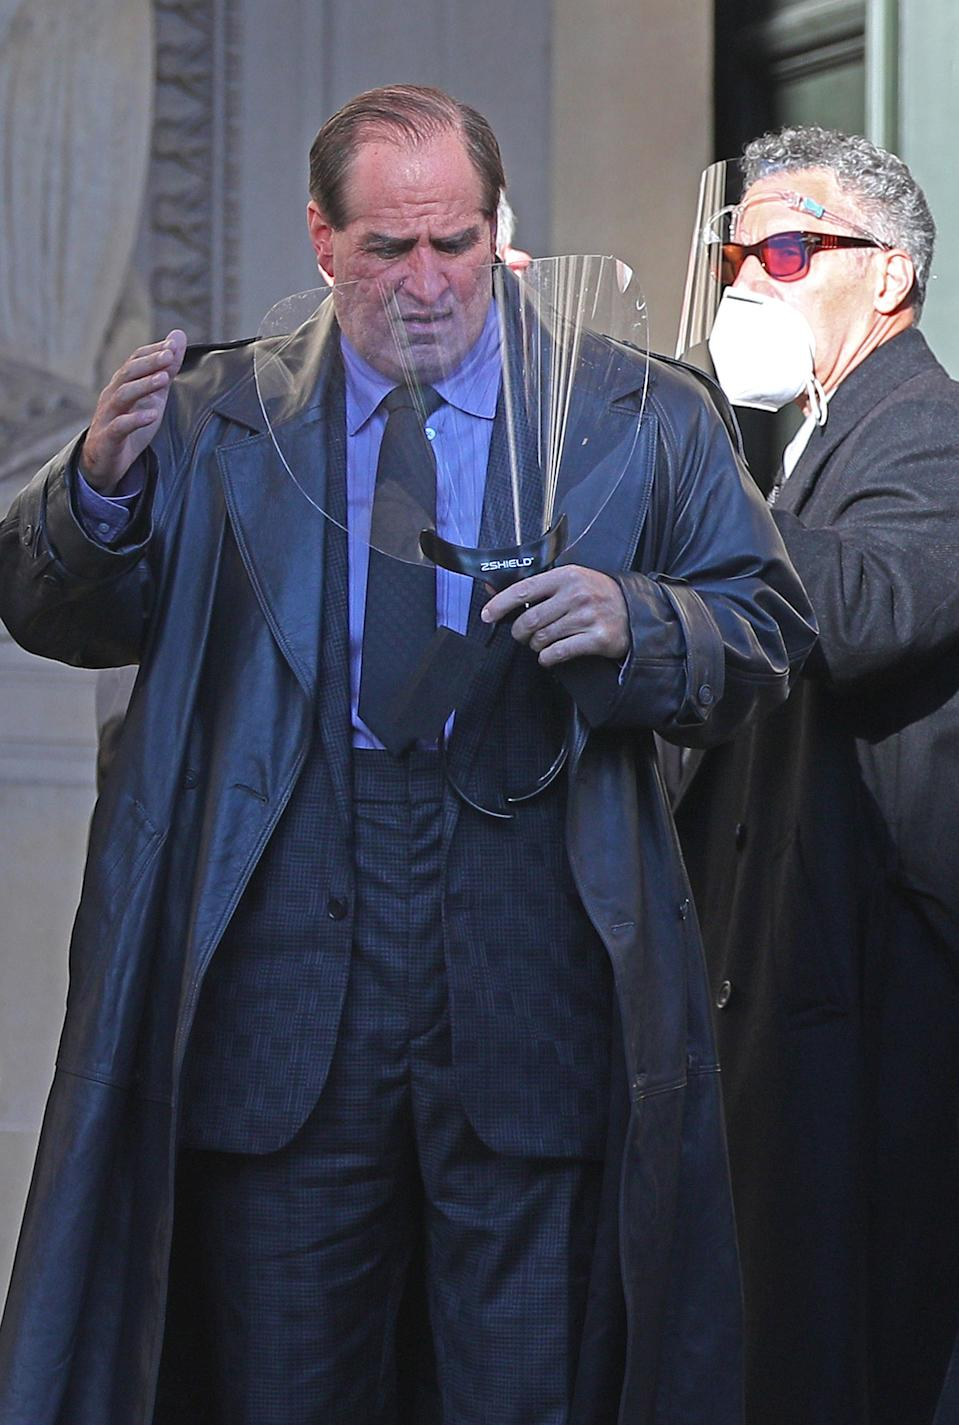 Colin Farrell during the filming of The Batman taking place in Liverpool.